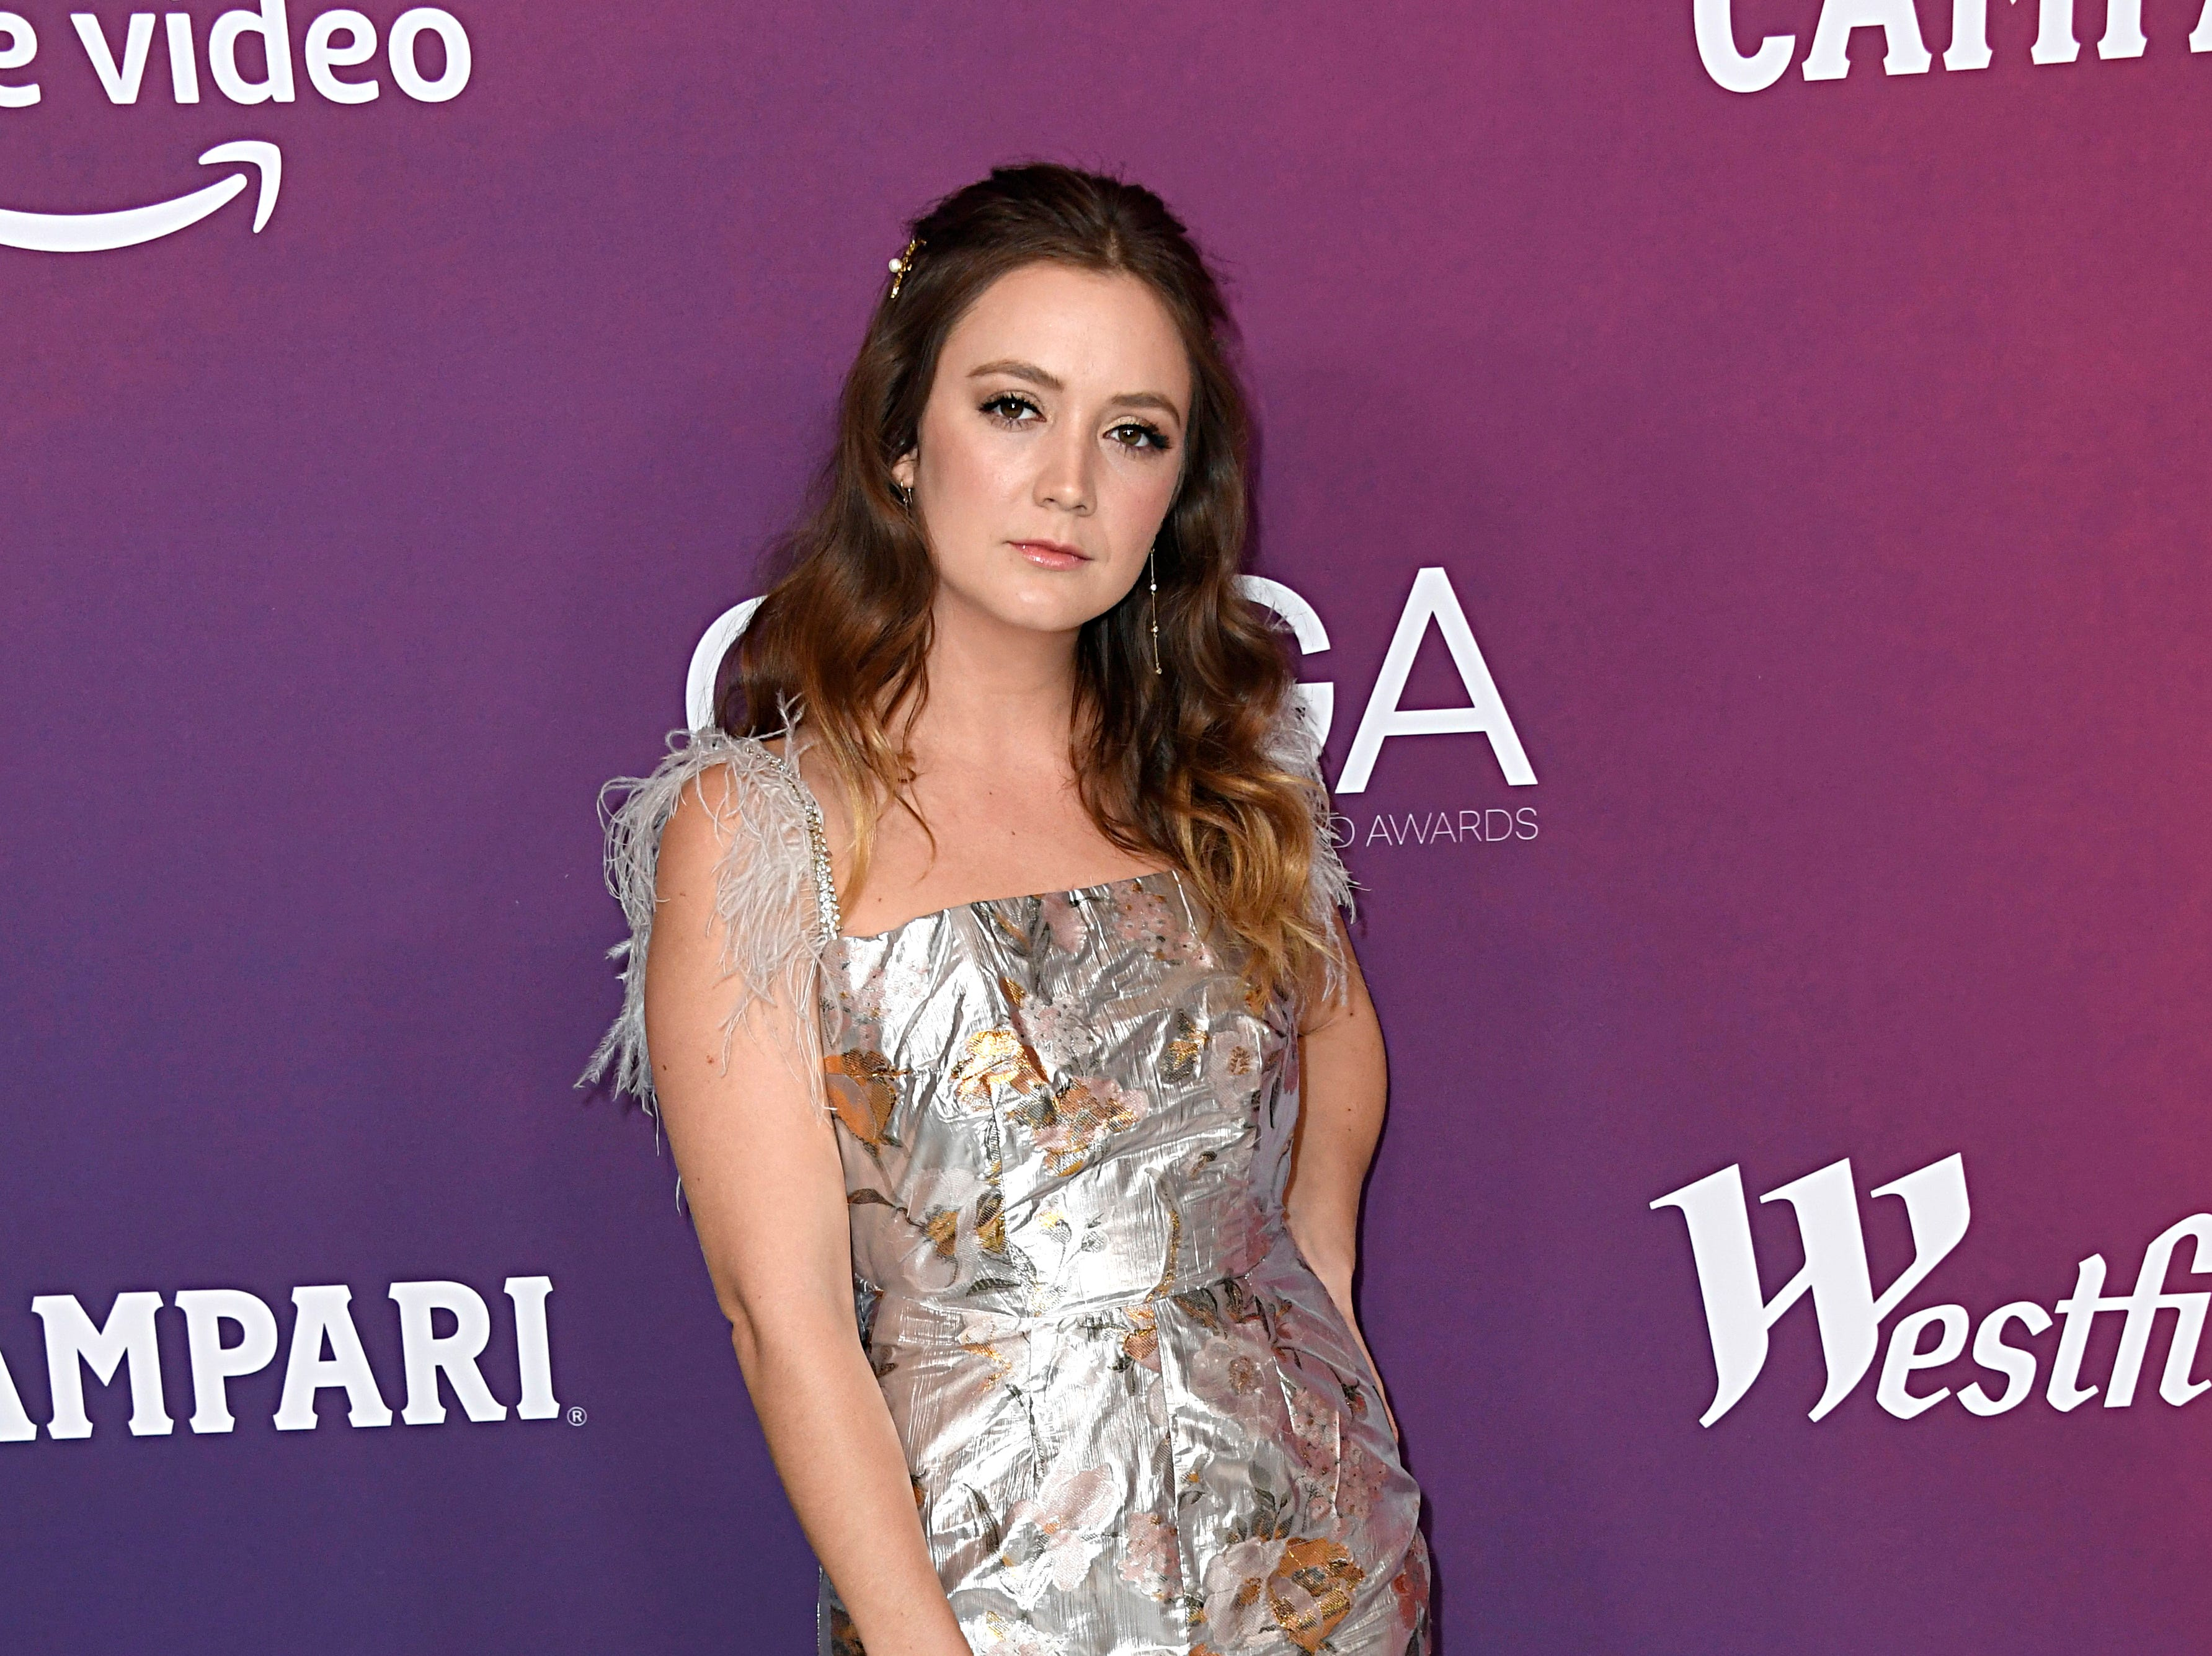 BEVERLY HILLS, CALIFORNIA - FEBRUARY 19: Billie Lourd attends The 21st CDGA (Costume Designers Guild Awards) at The Beverly Hilton Hotel on February 19, 2019 in Beverly Hills, California. (Photo by Frazer Harrison/Getty Images) ORG XMIT: 775282683 ORIG FILE ID: 1130828248